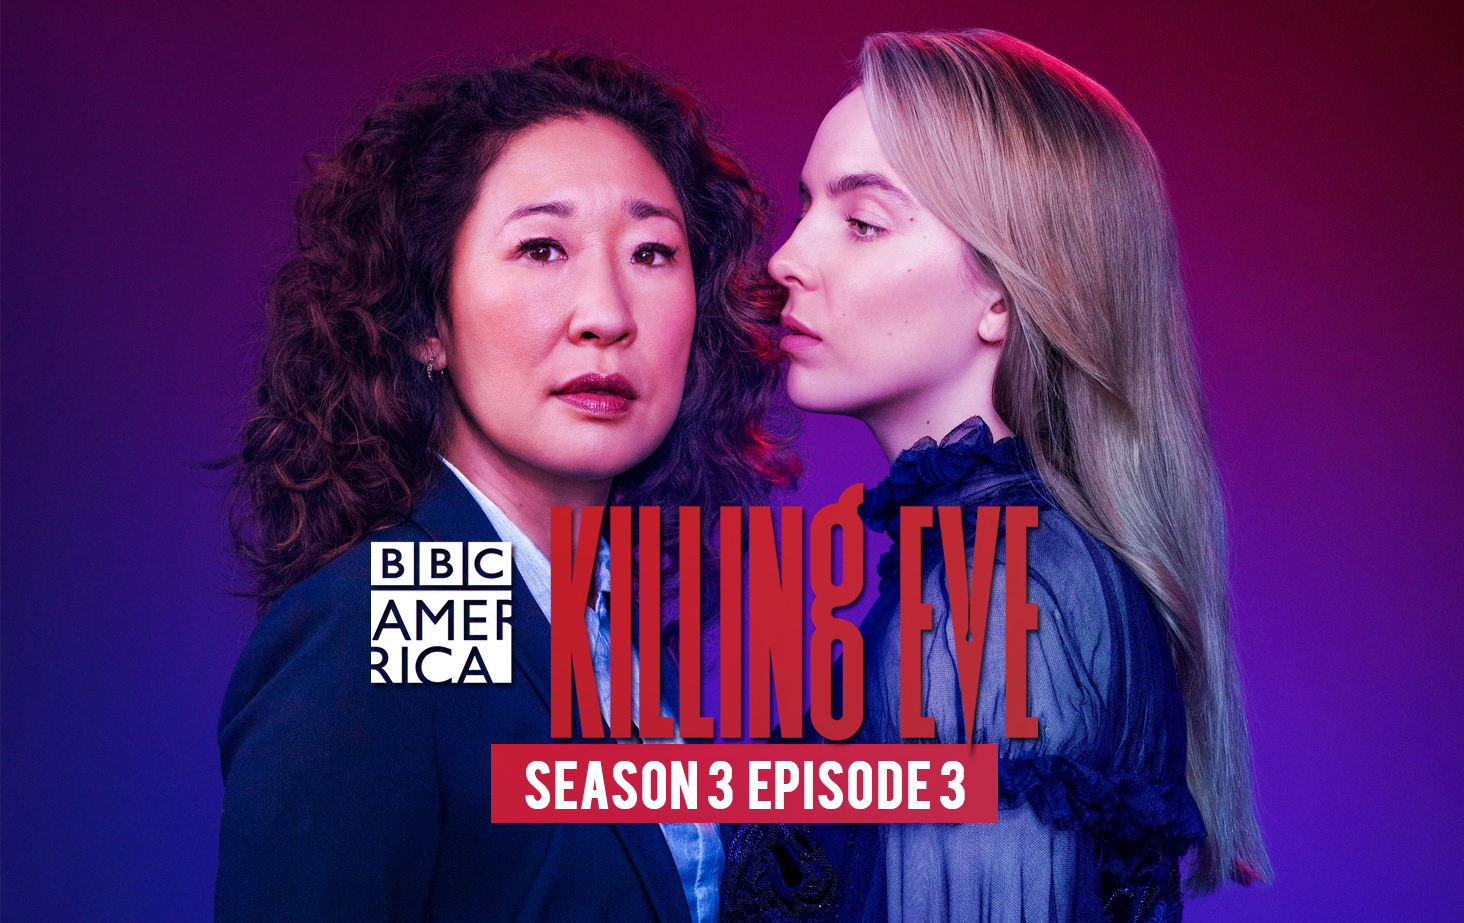 Killing Eve Season 3 Episode 3 update, Spoilers, Promos and All You Need To Know